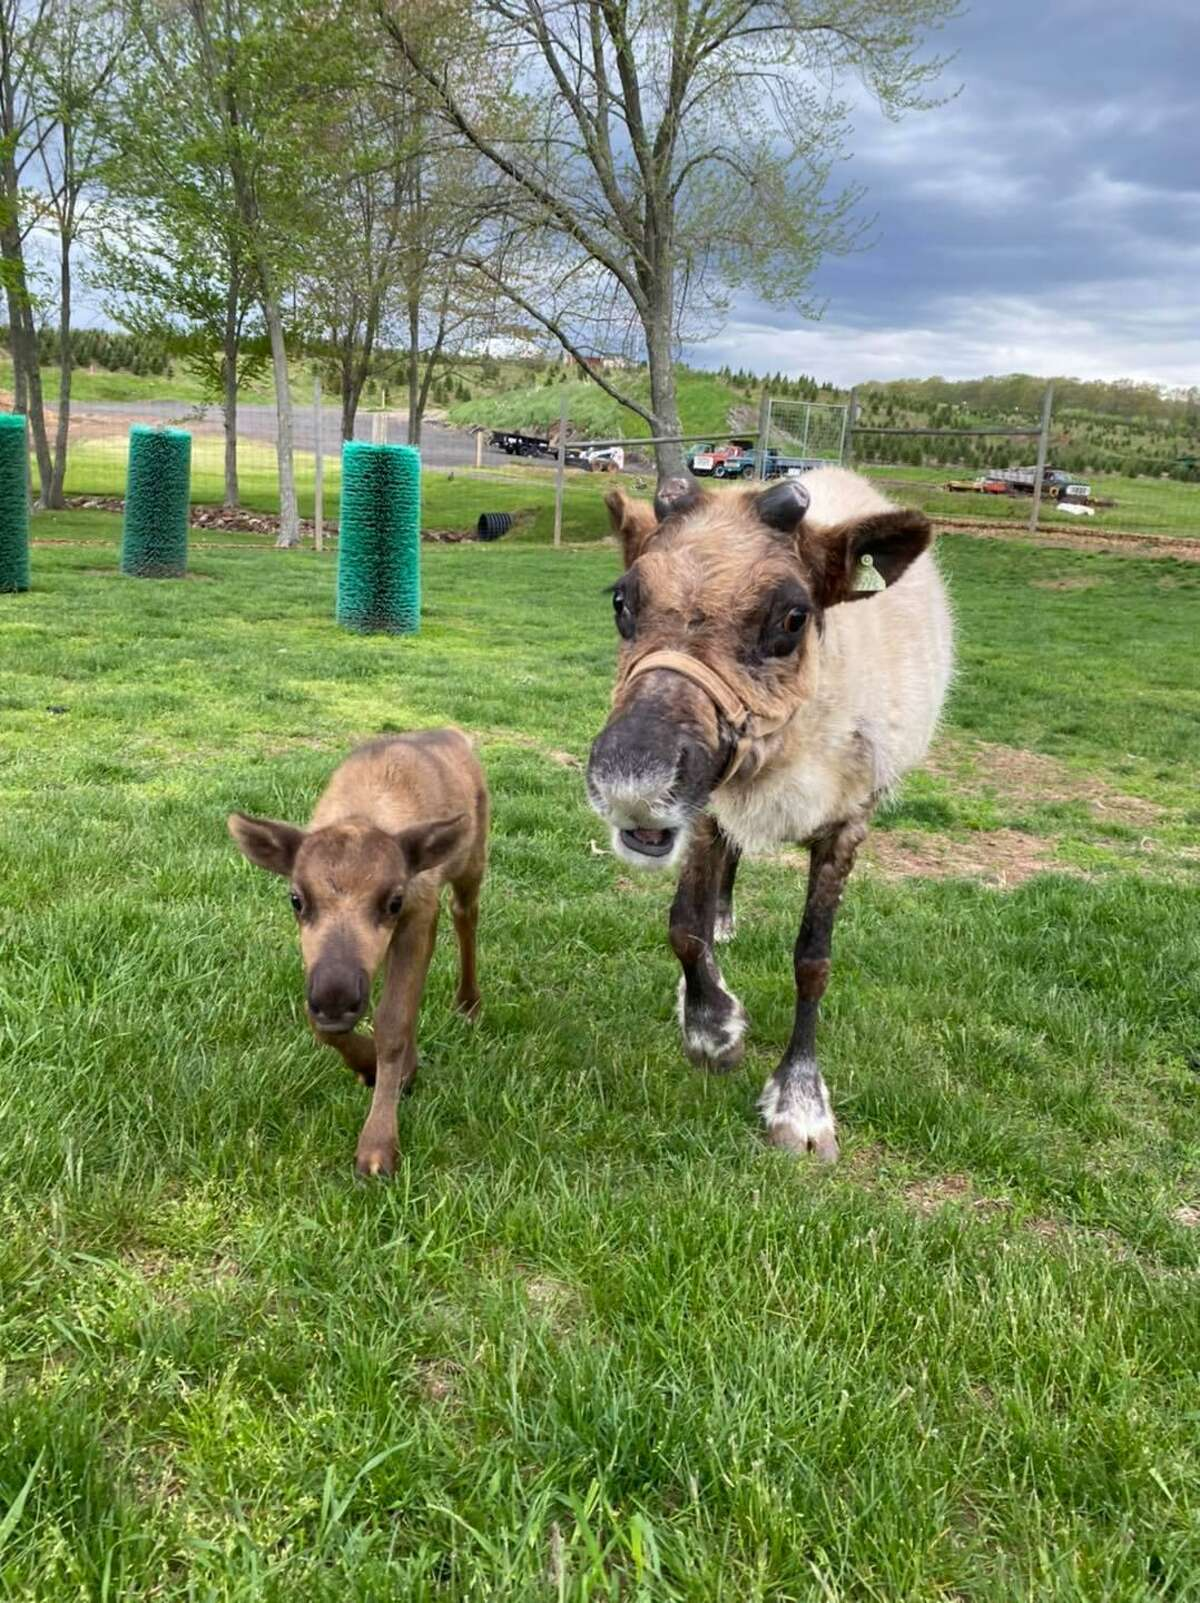 Rudy, left, was born at the South Windsor, Conn., farm on April 18, 2021.